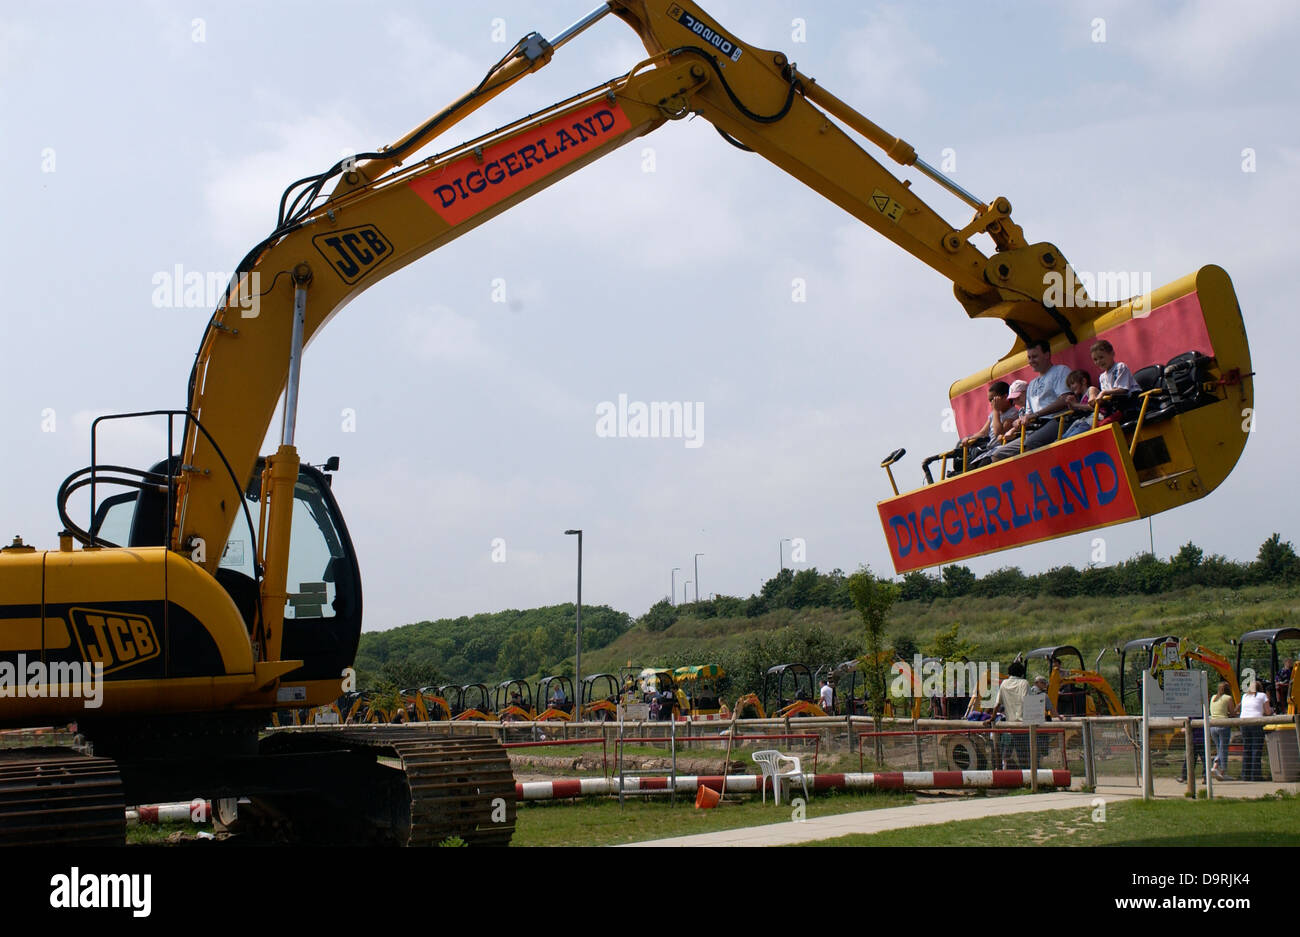 JCB racing and stunts in Diggerland Strood Kent - Stock Image